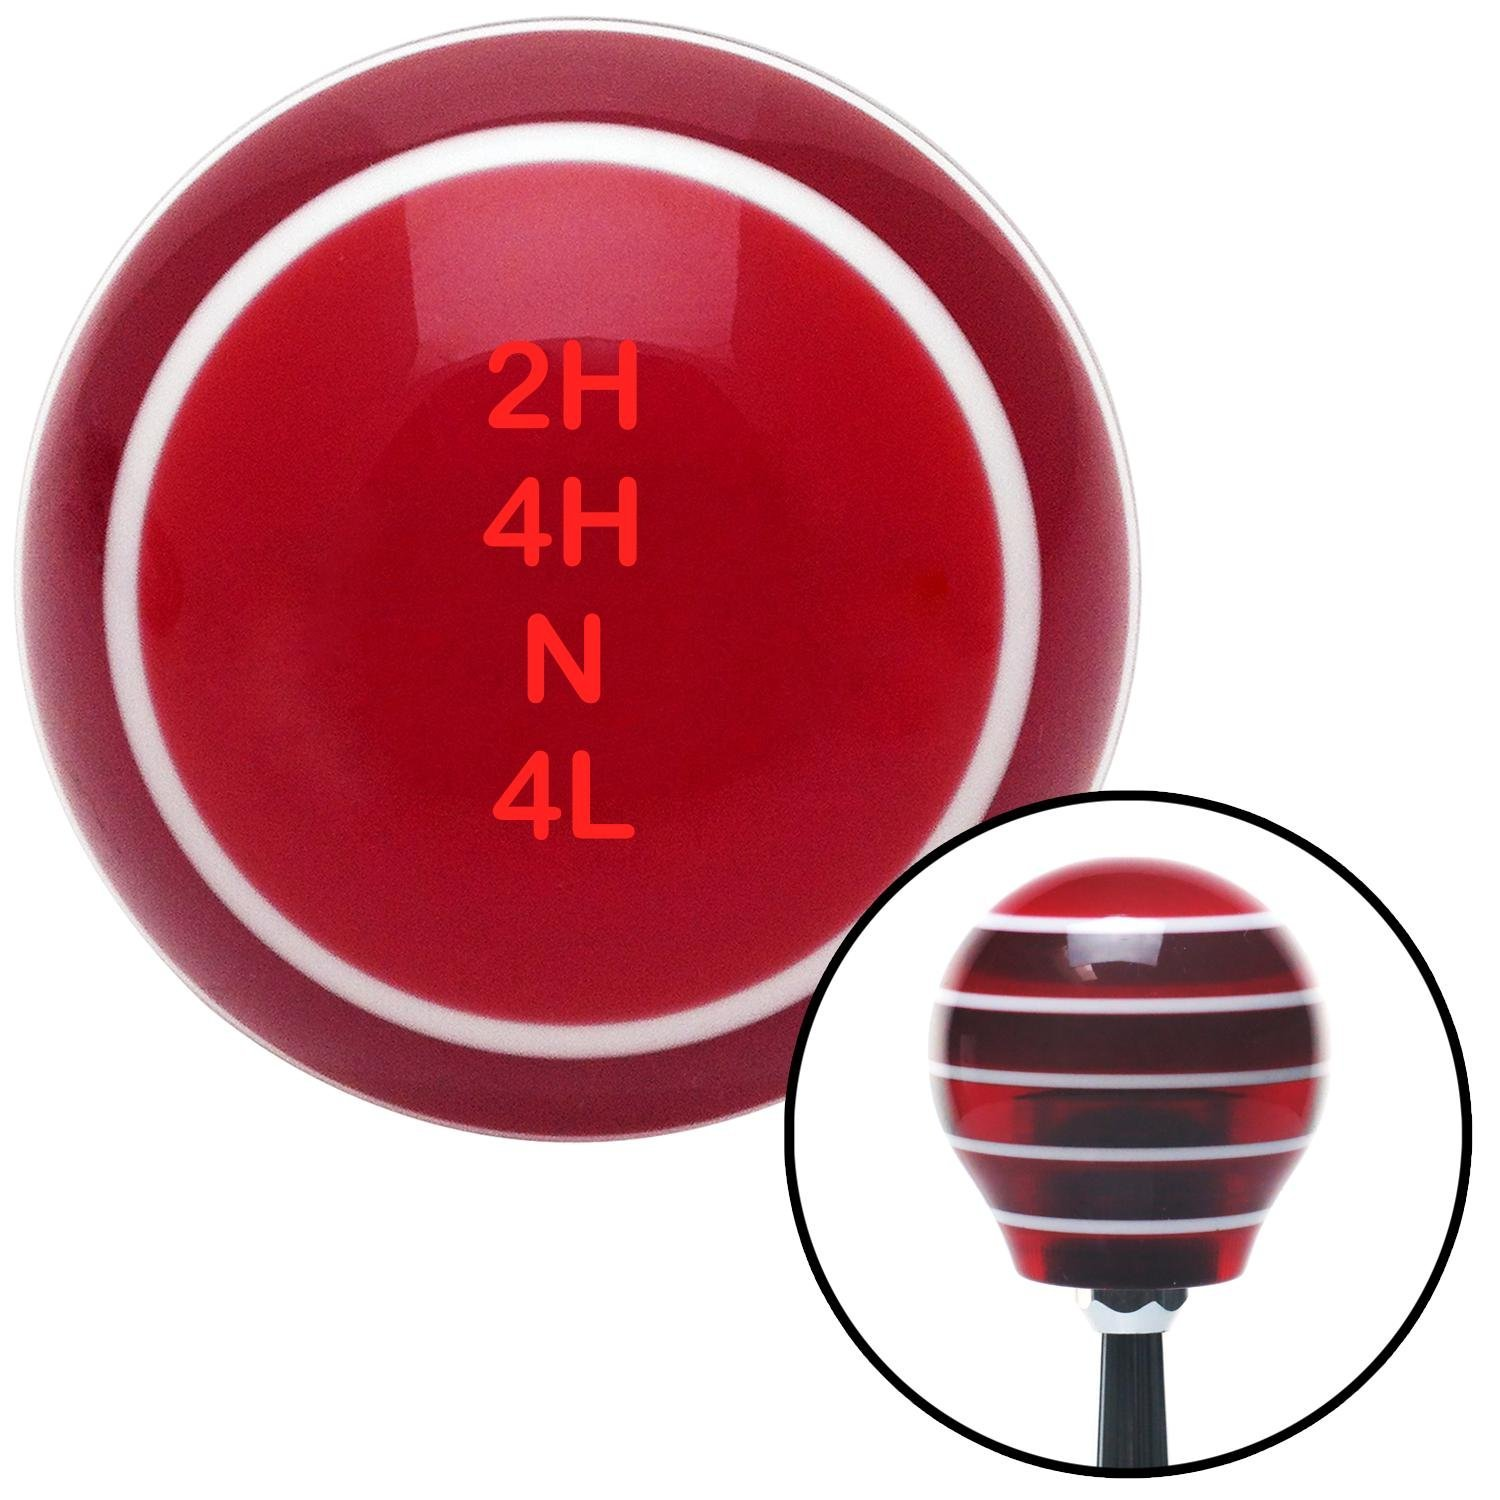 Red Shift Pattern 42n American Shifter 117800 Red Stripe Shift Knob with M16 x 1.5 Insert